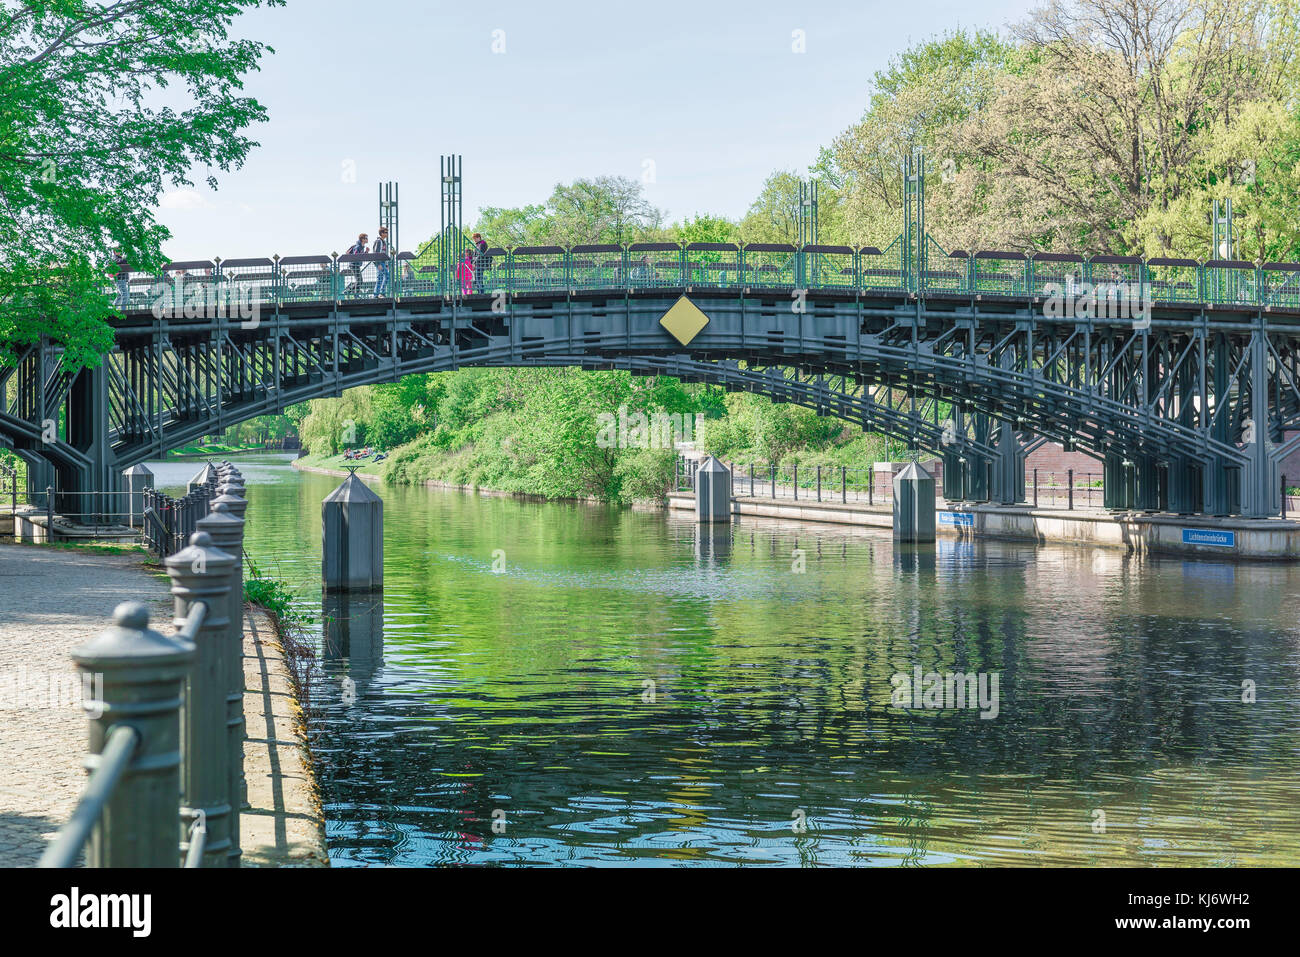 Berlin spring, the bridge spanning the Landwehrkanal at the Neuer See entrance to the Tiergarten park, Berlin Germany. - Stock Image